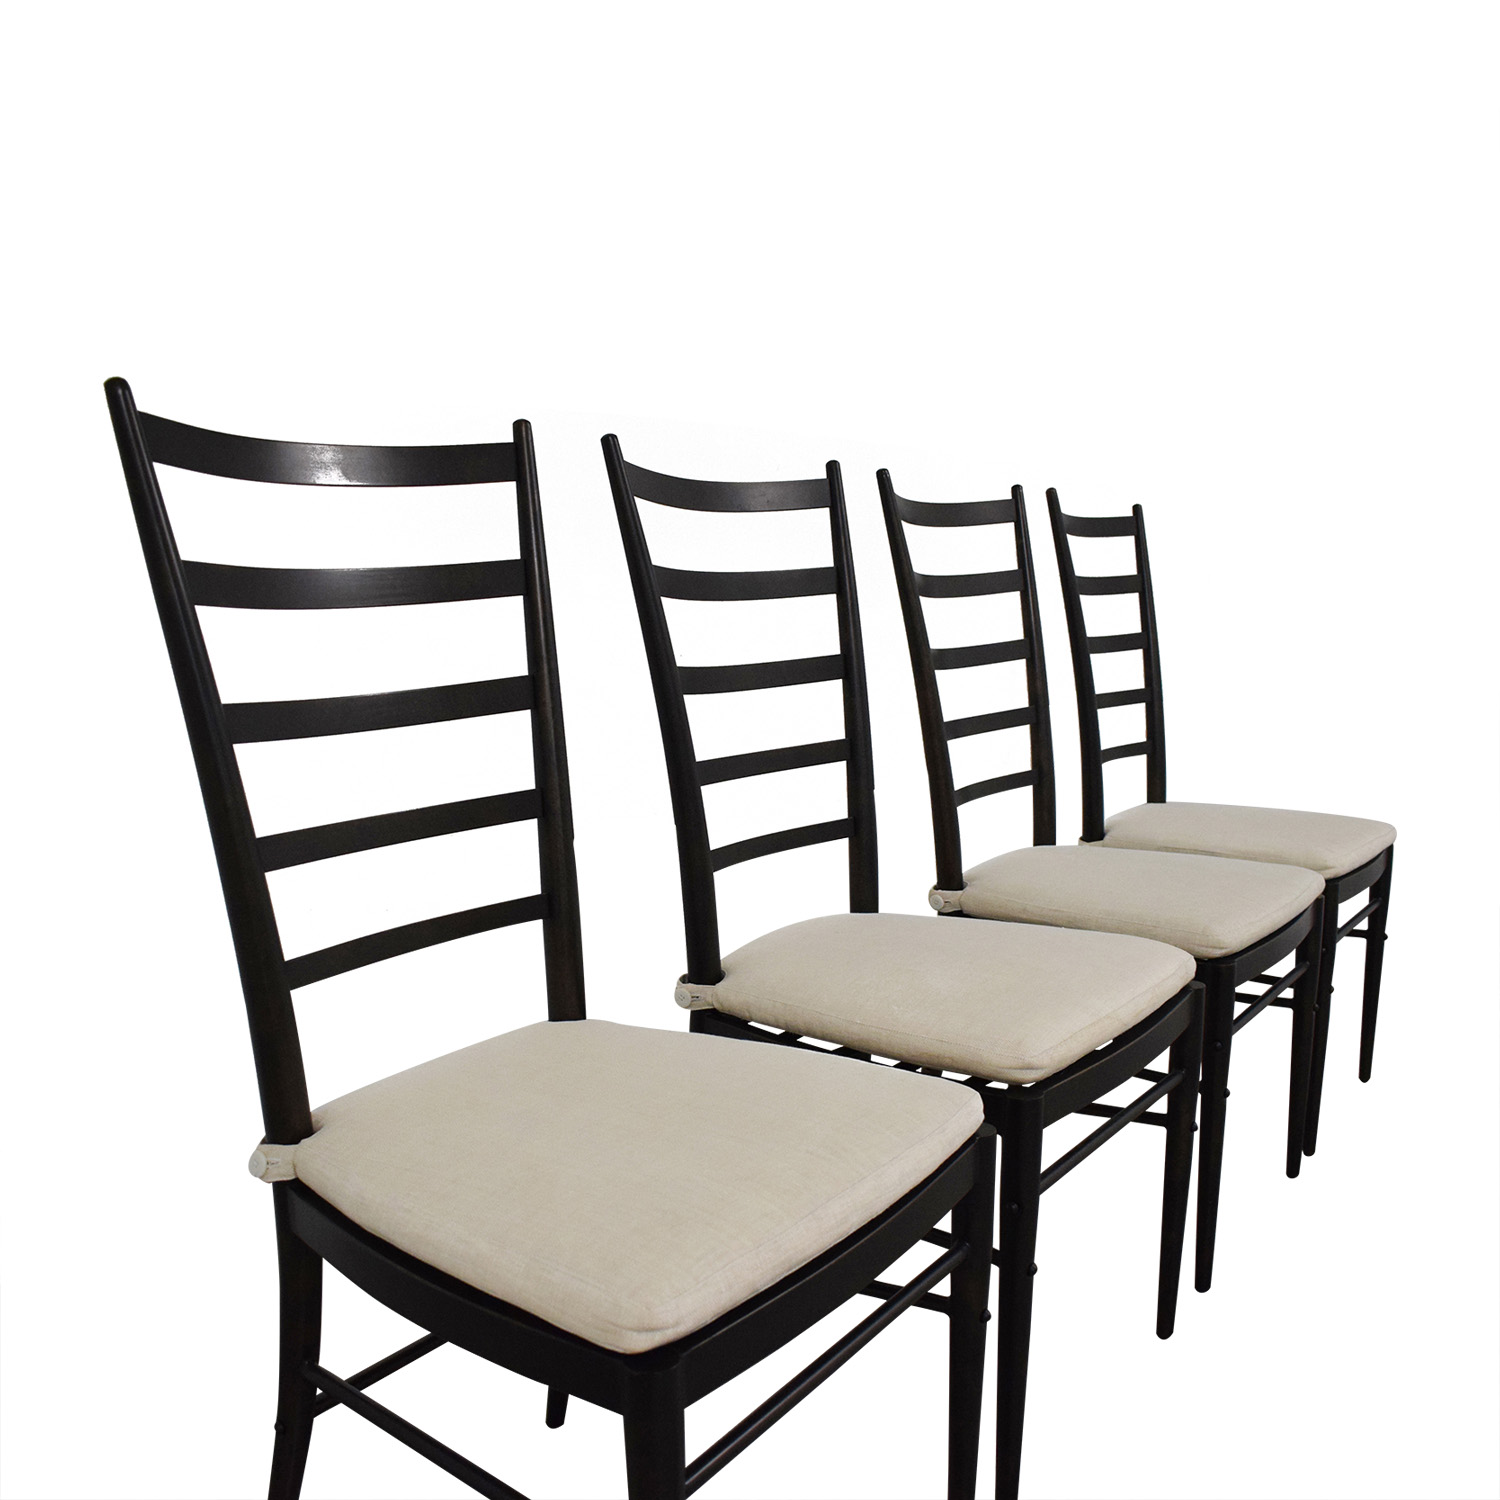 Crate & Barrel Ladder Back Dining Chairs sale